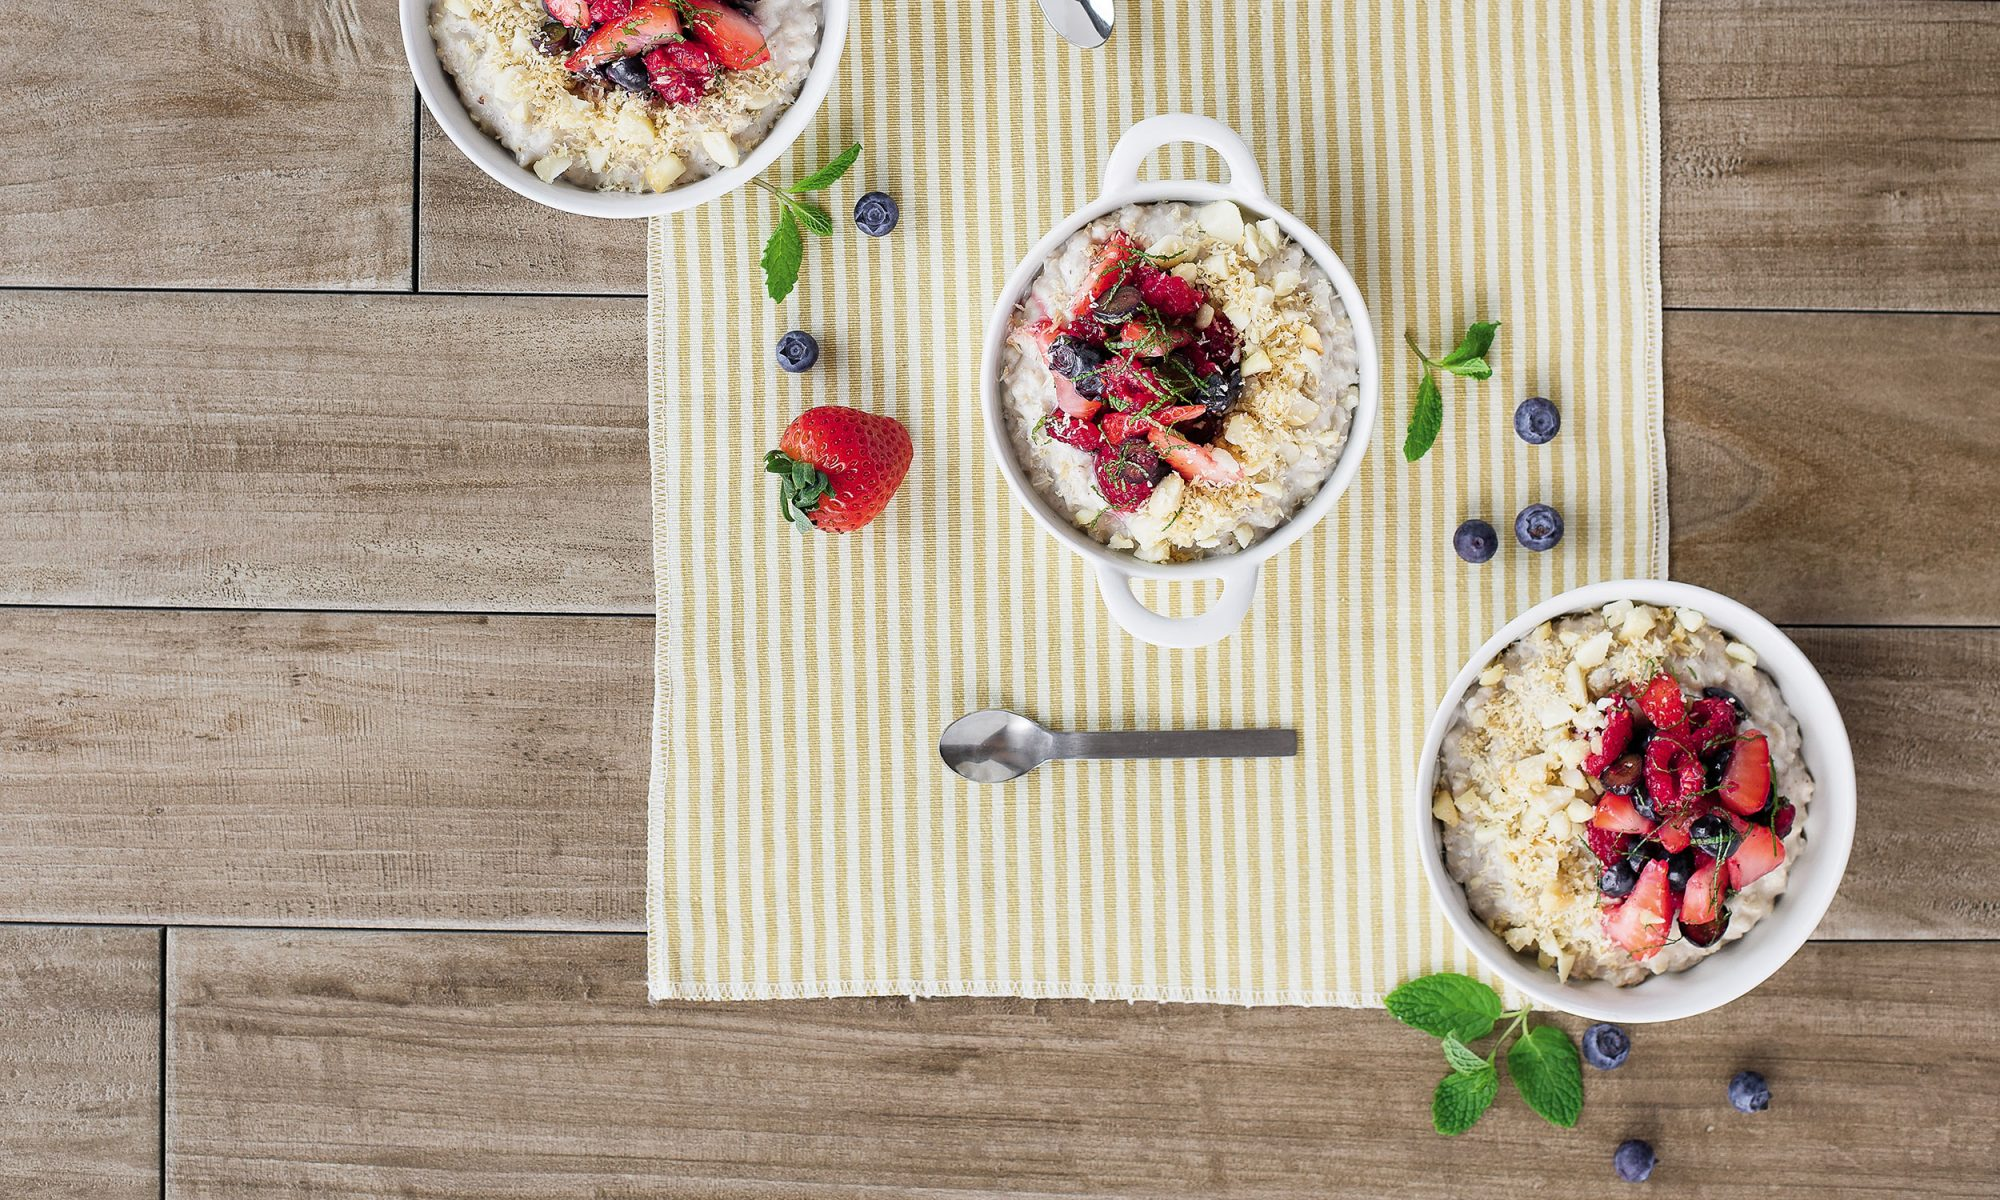 EC: This Peanut Butter and Jelly Rice Pudding Is Surfer-Approved